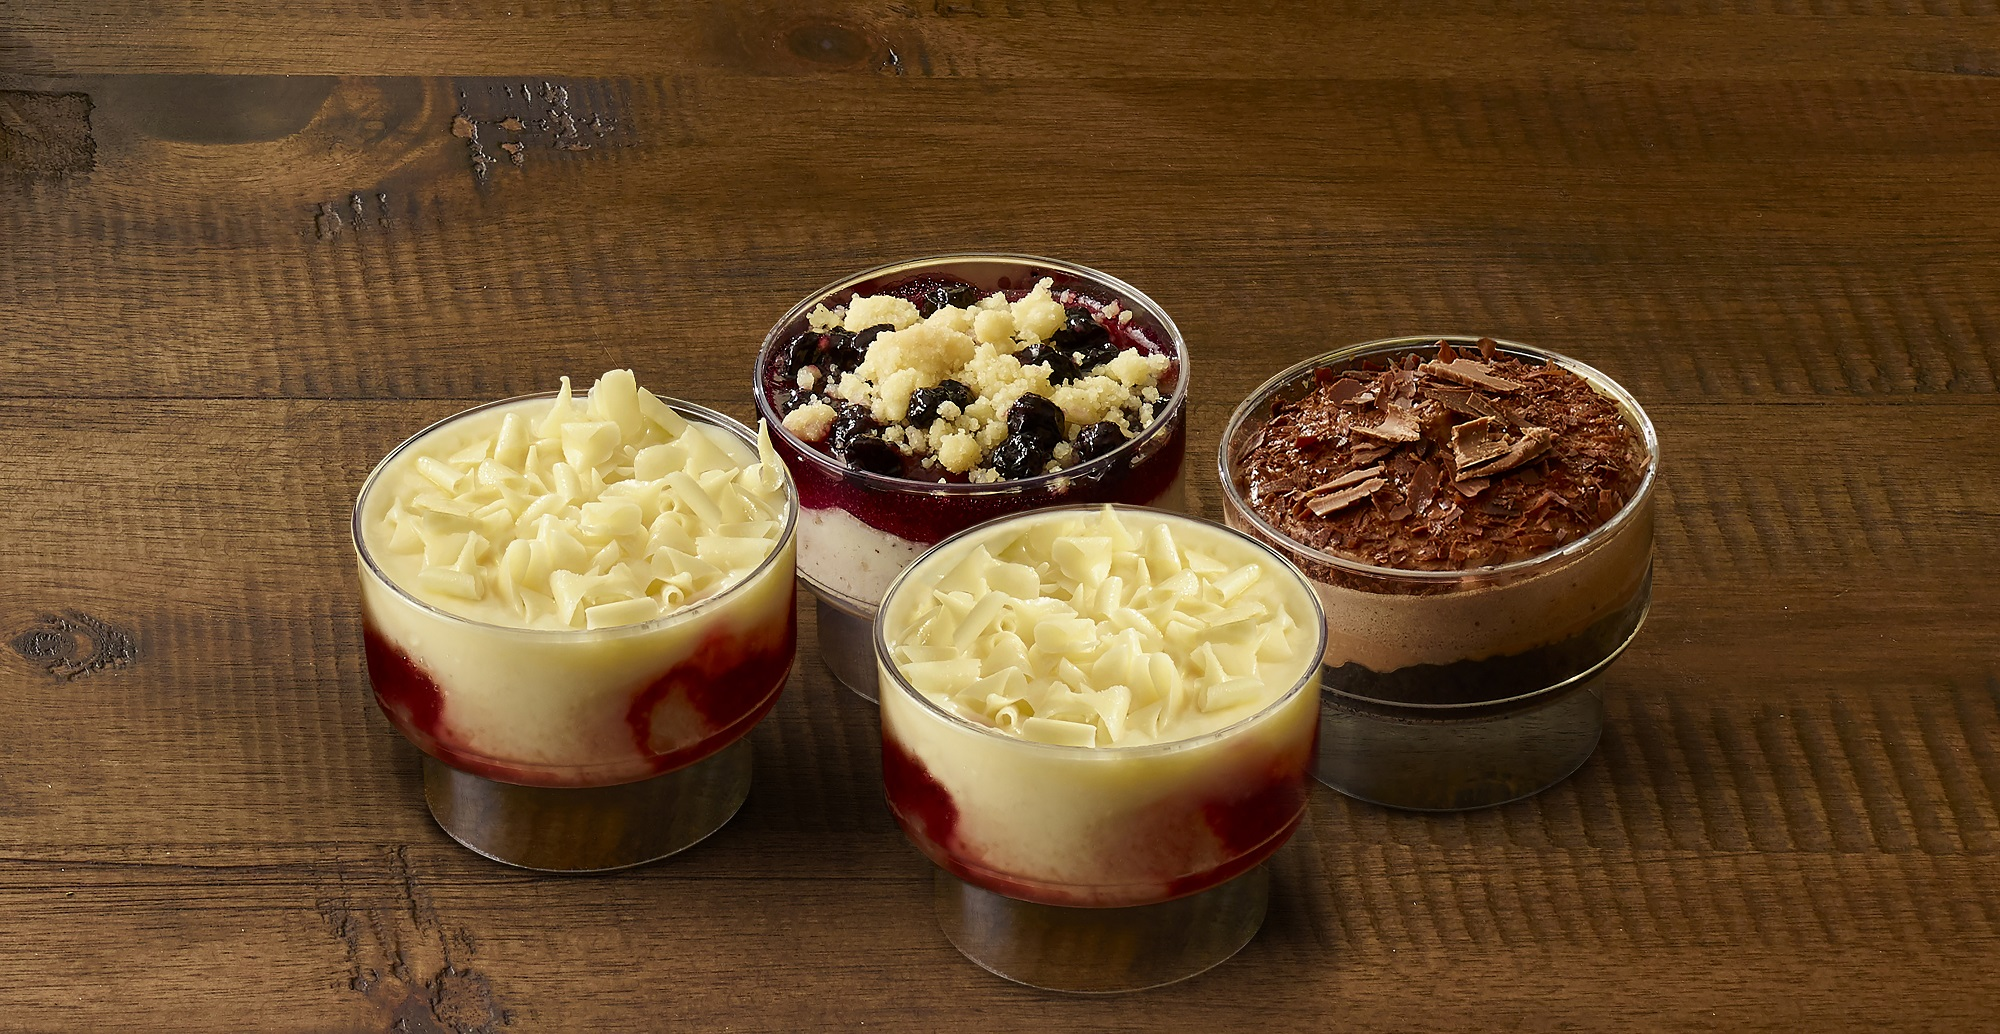 Olive Garden is giving 4 free desserts to people born on Feb. 29 to make up for lost birthdays